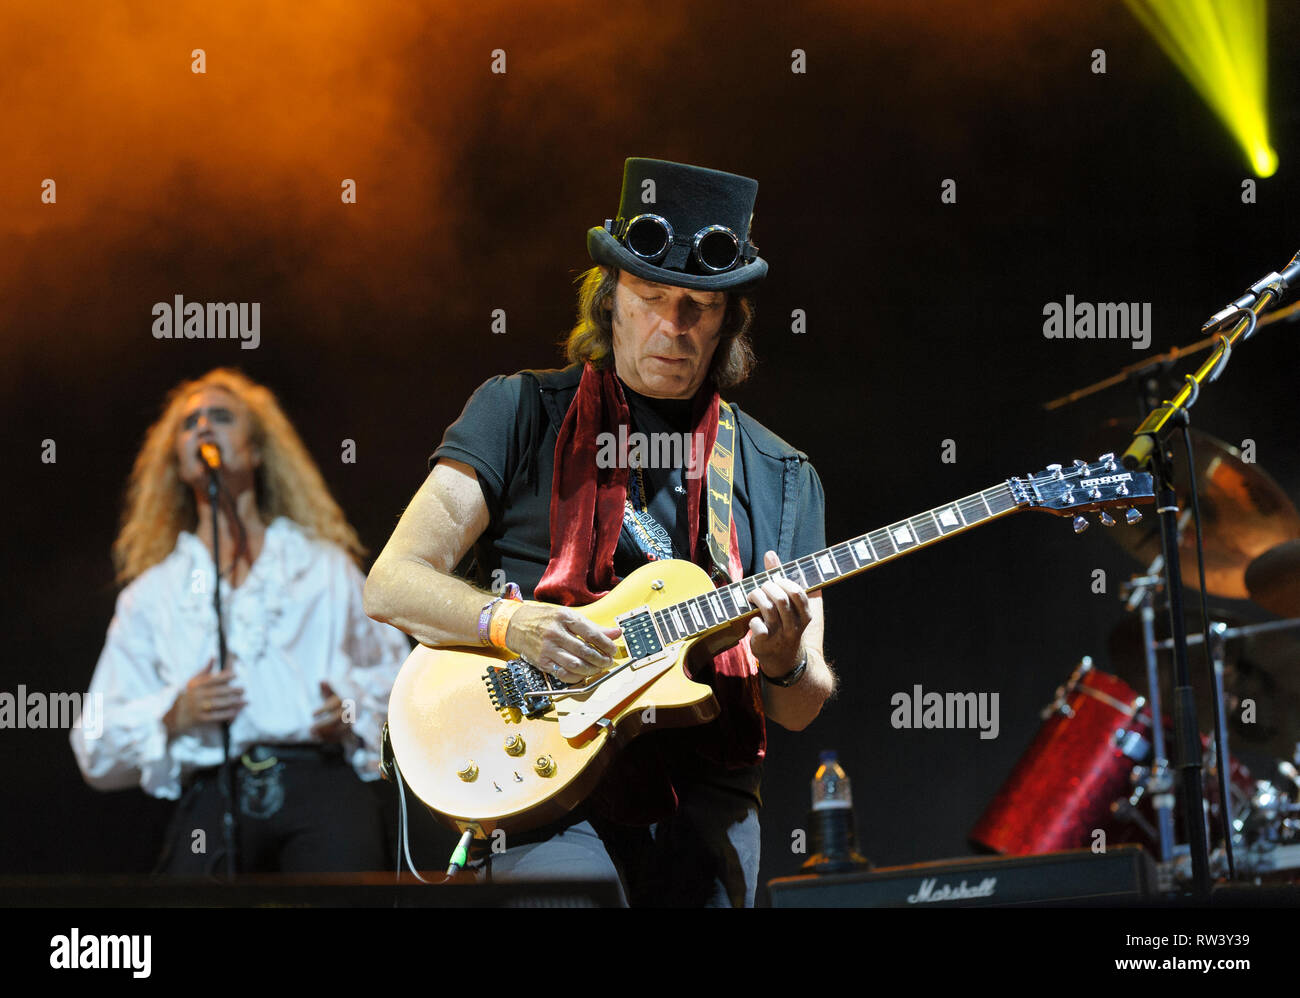 Steve Hackett and Nad Sylvan performing at the Fairport's Cropredy Convention, August 7, 2014 - Stock Image